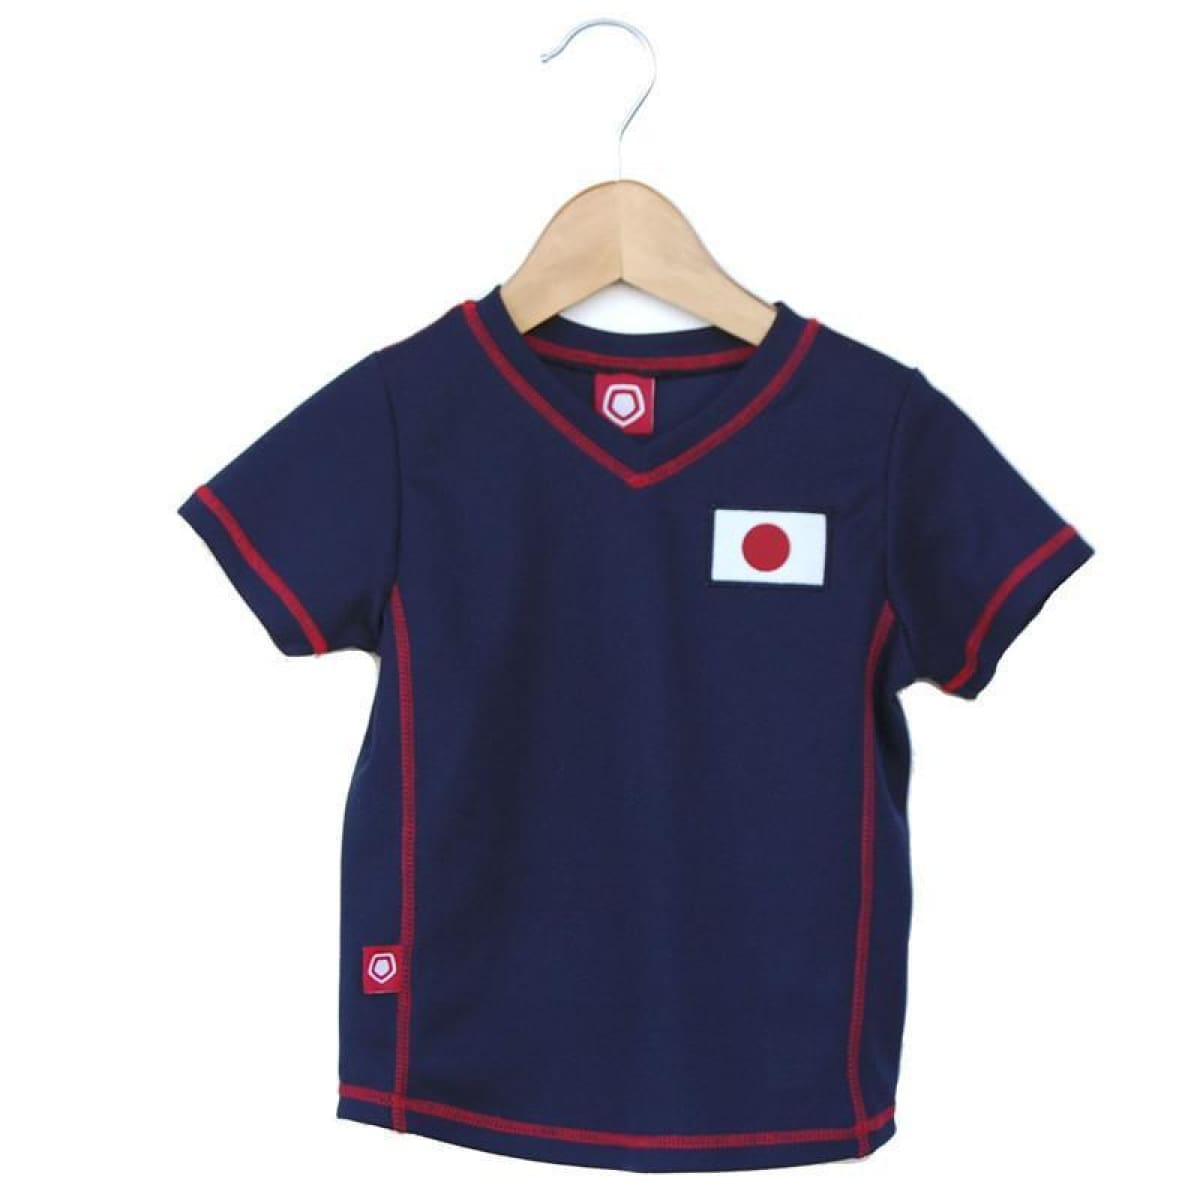 Japan Soccer Toddler Jersey - Navy / Toddler 1 - Ultras Soccer Jerseys